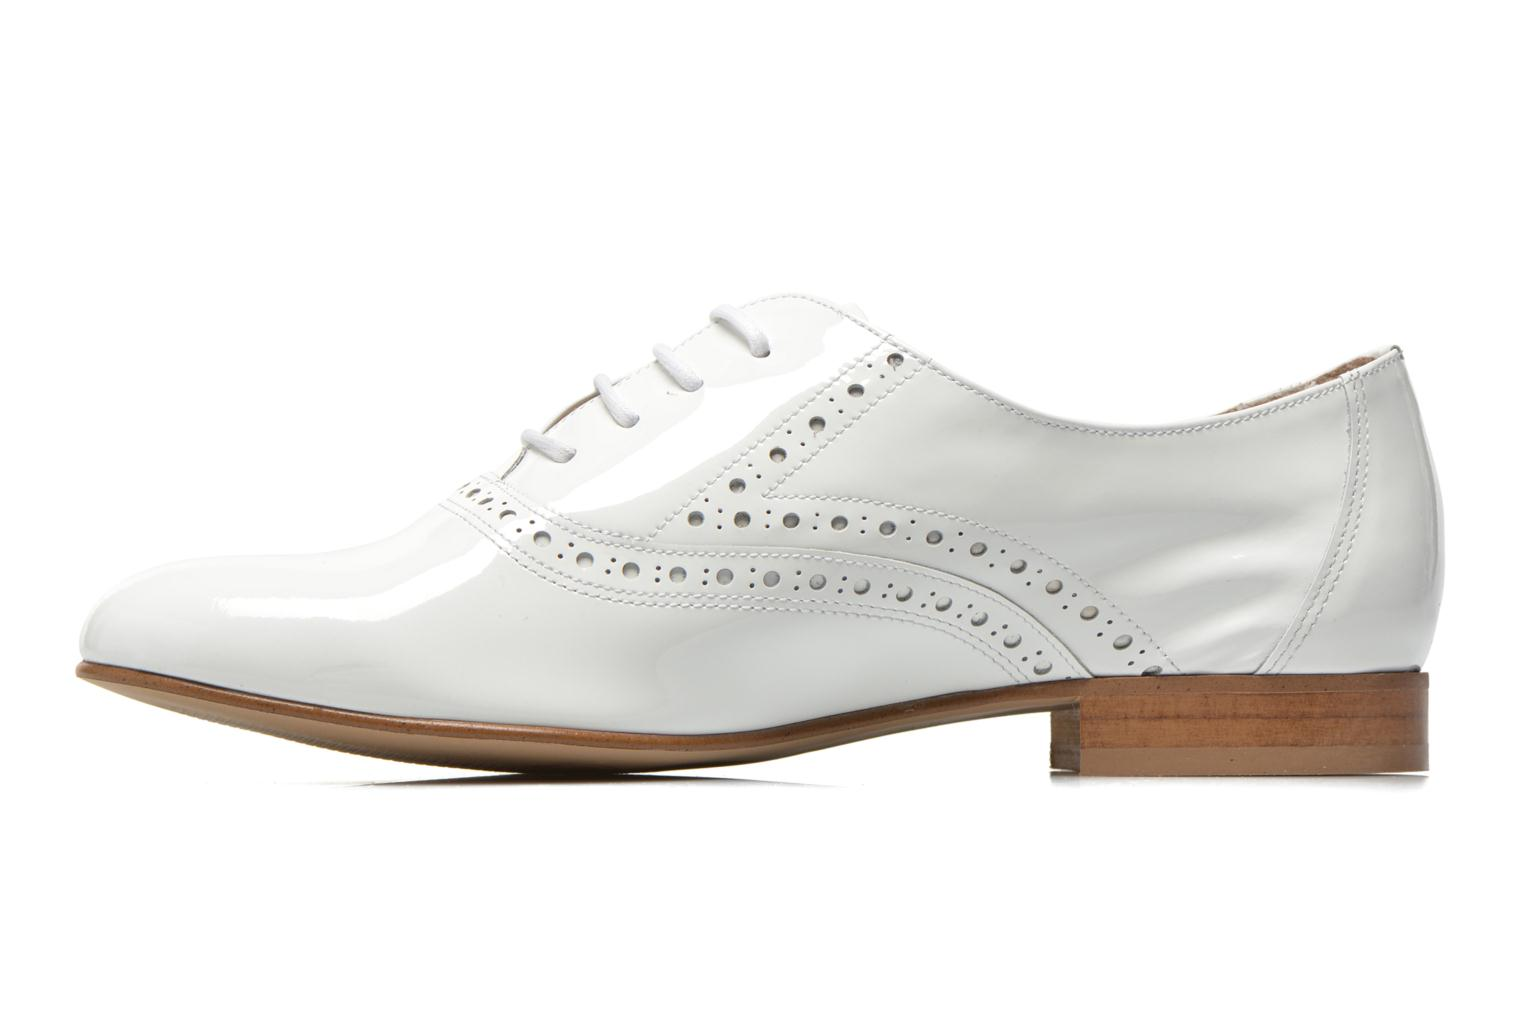 Lace-up shoes Minelli F61 430/VER White front view